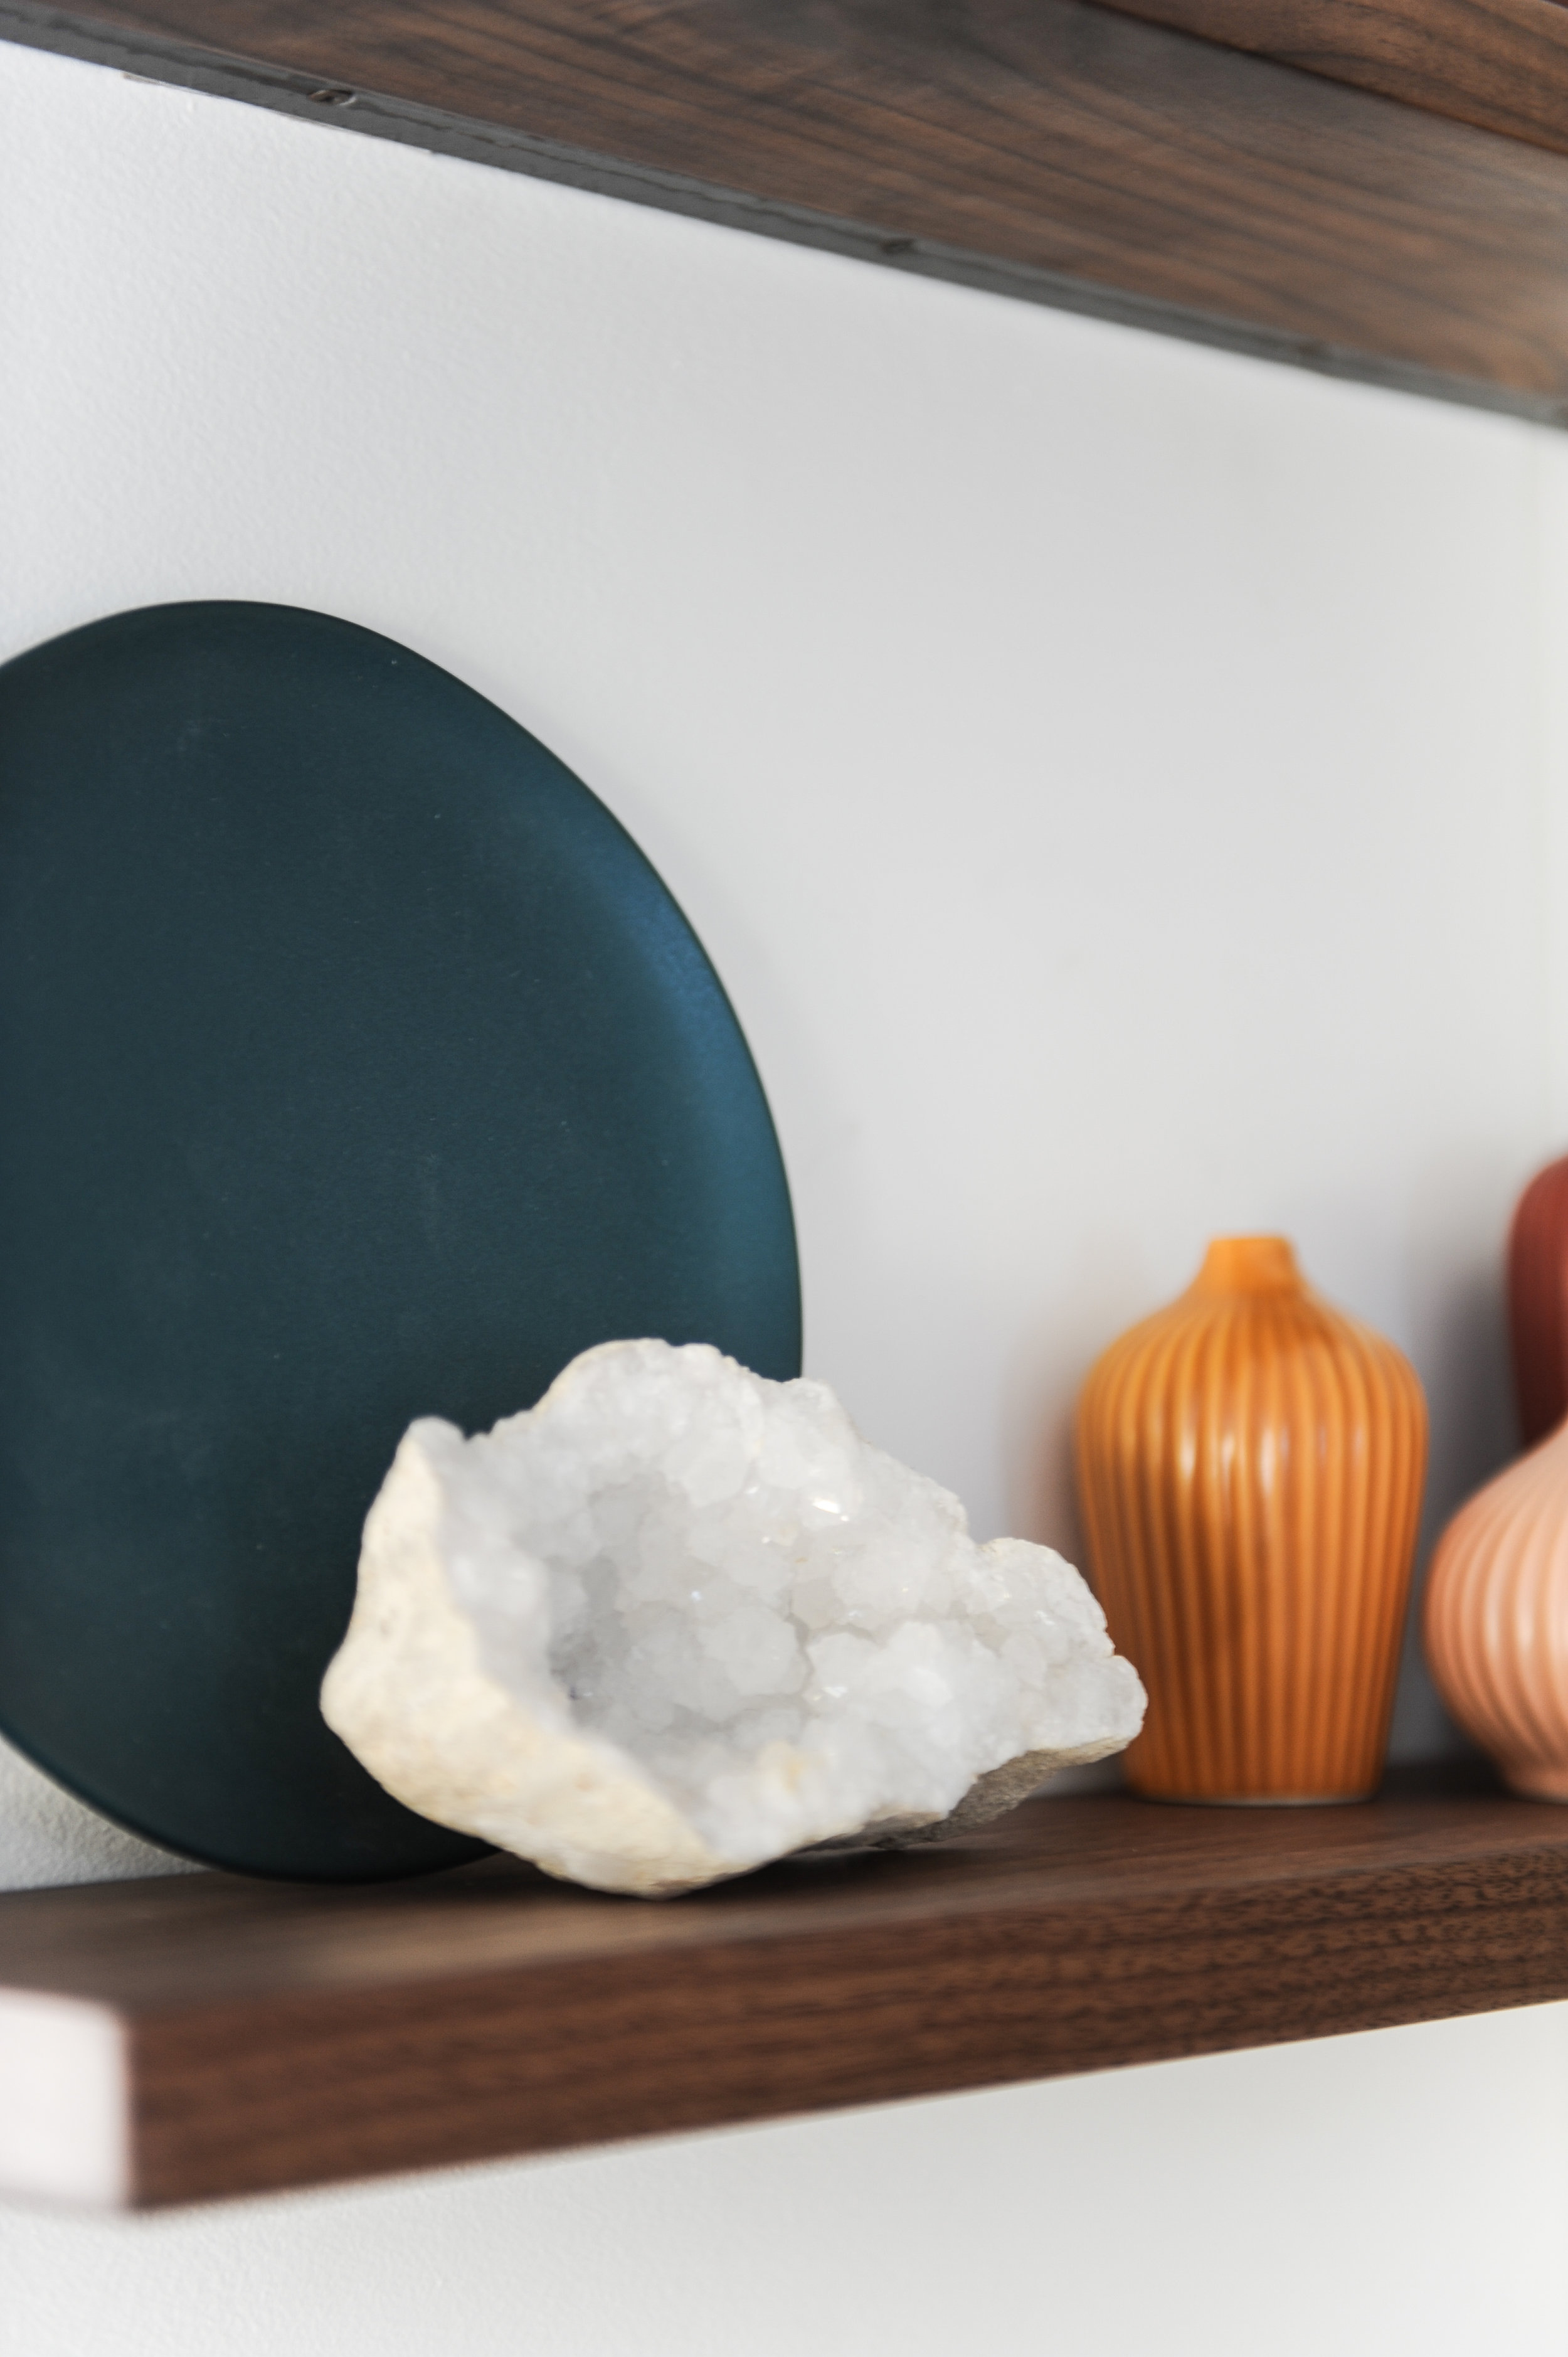 A white crystal is sitting on a wooden shelve in front of a blue vase and next to an orange vase.